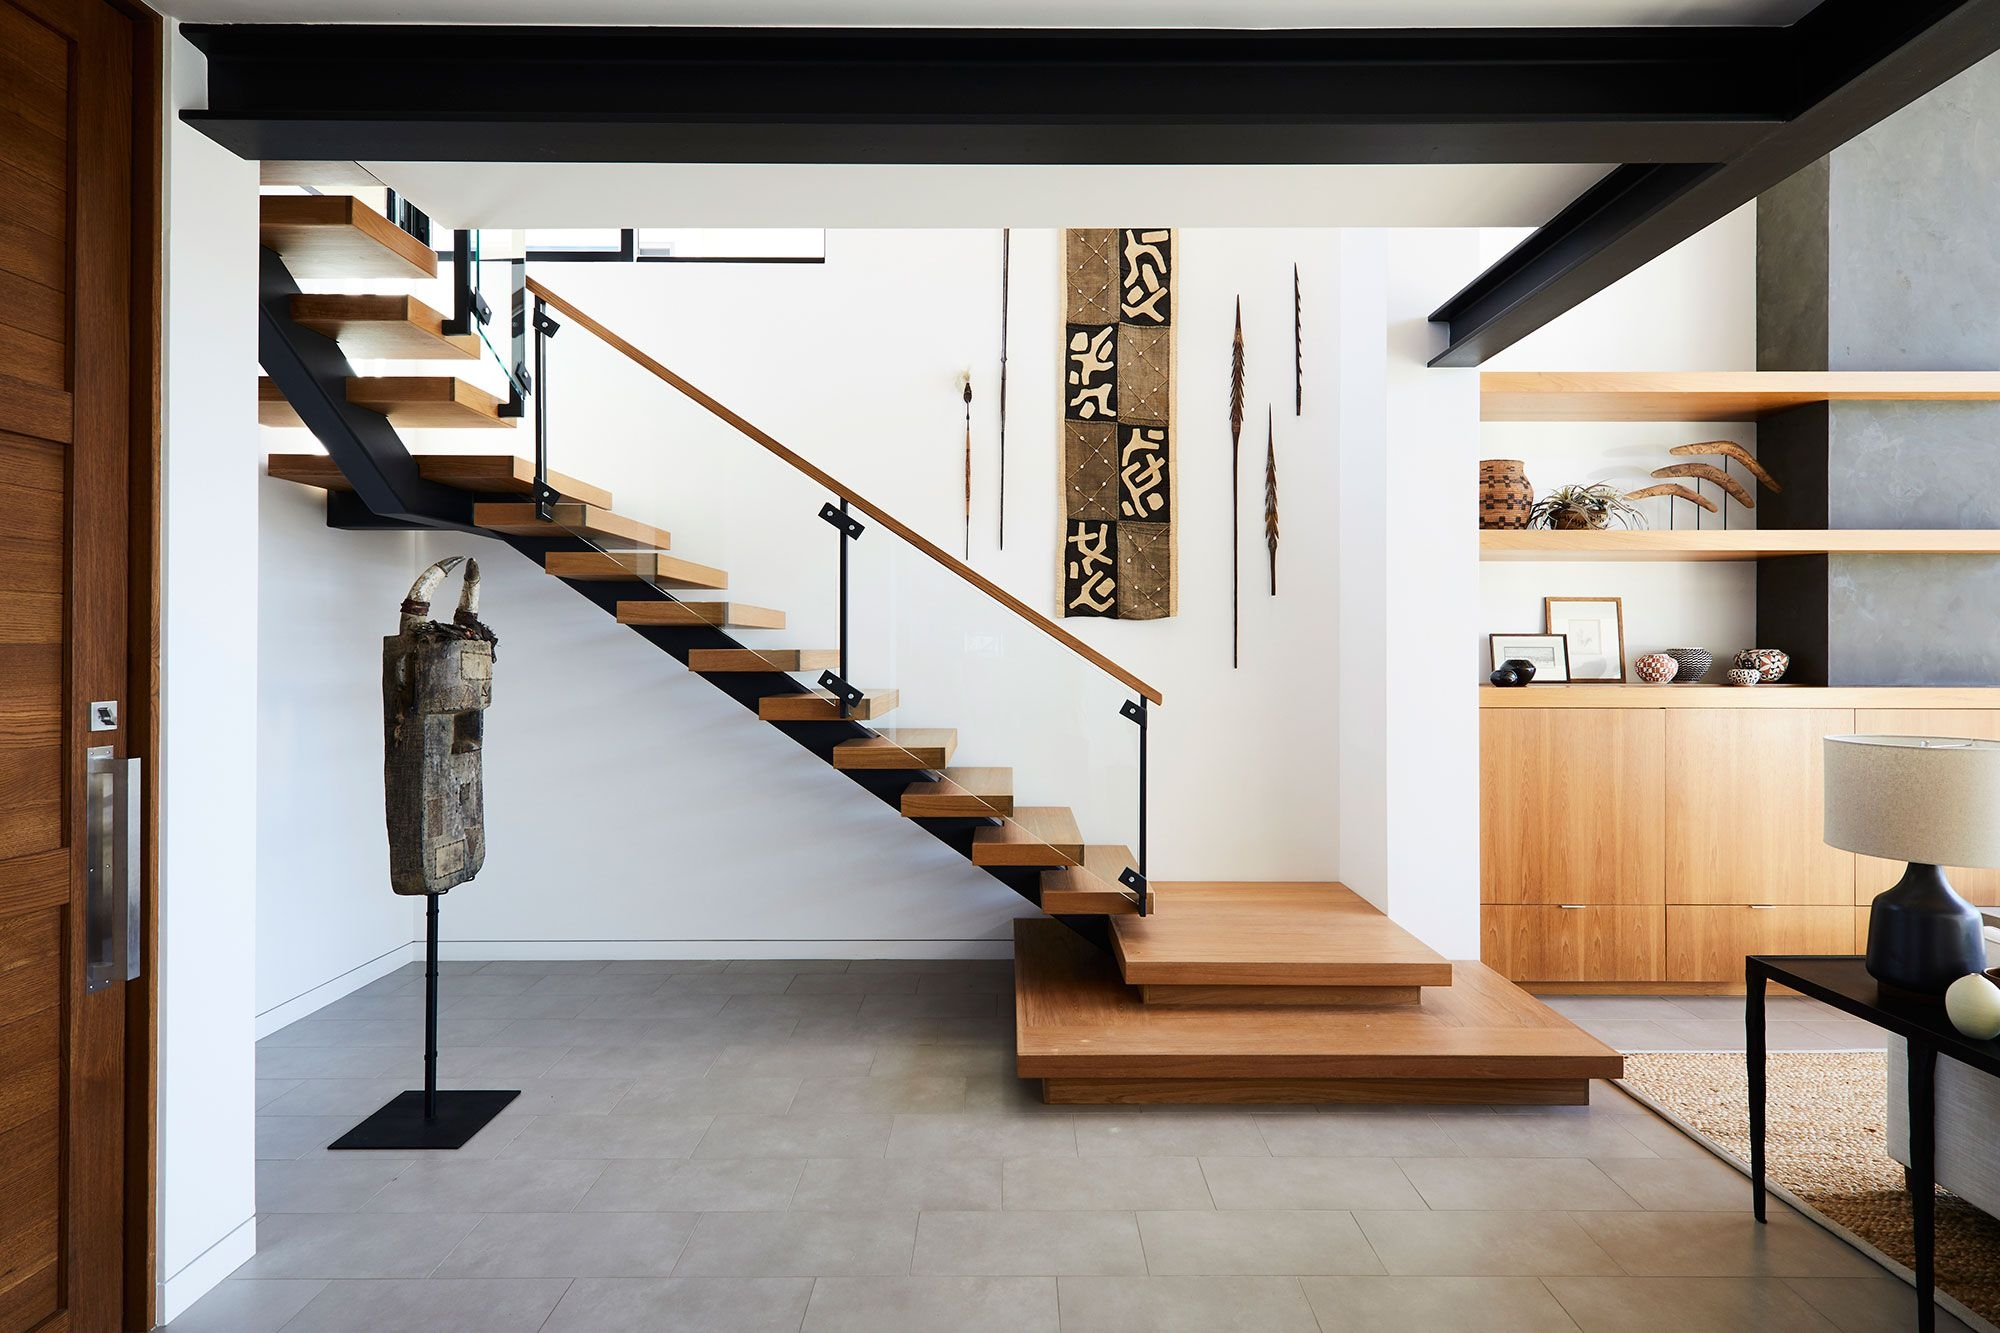 55 Best Staircase Ideas Top Ways To Decorate A Stairway | Duplex Staircase Railing Designs | Indoor | Wooden | Grill | Two Story House Stair | Floor To Ceiling